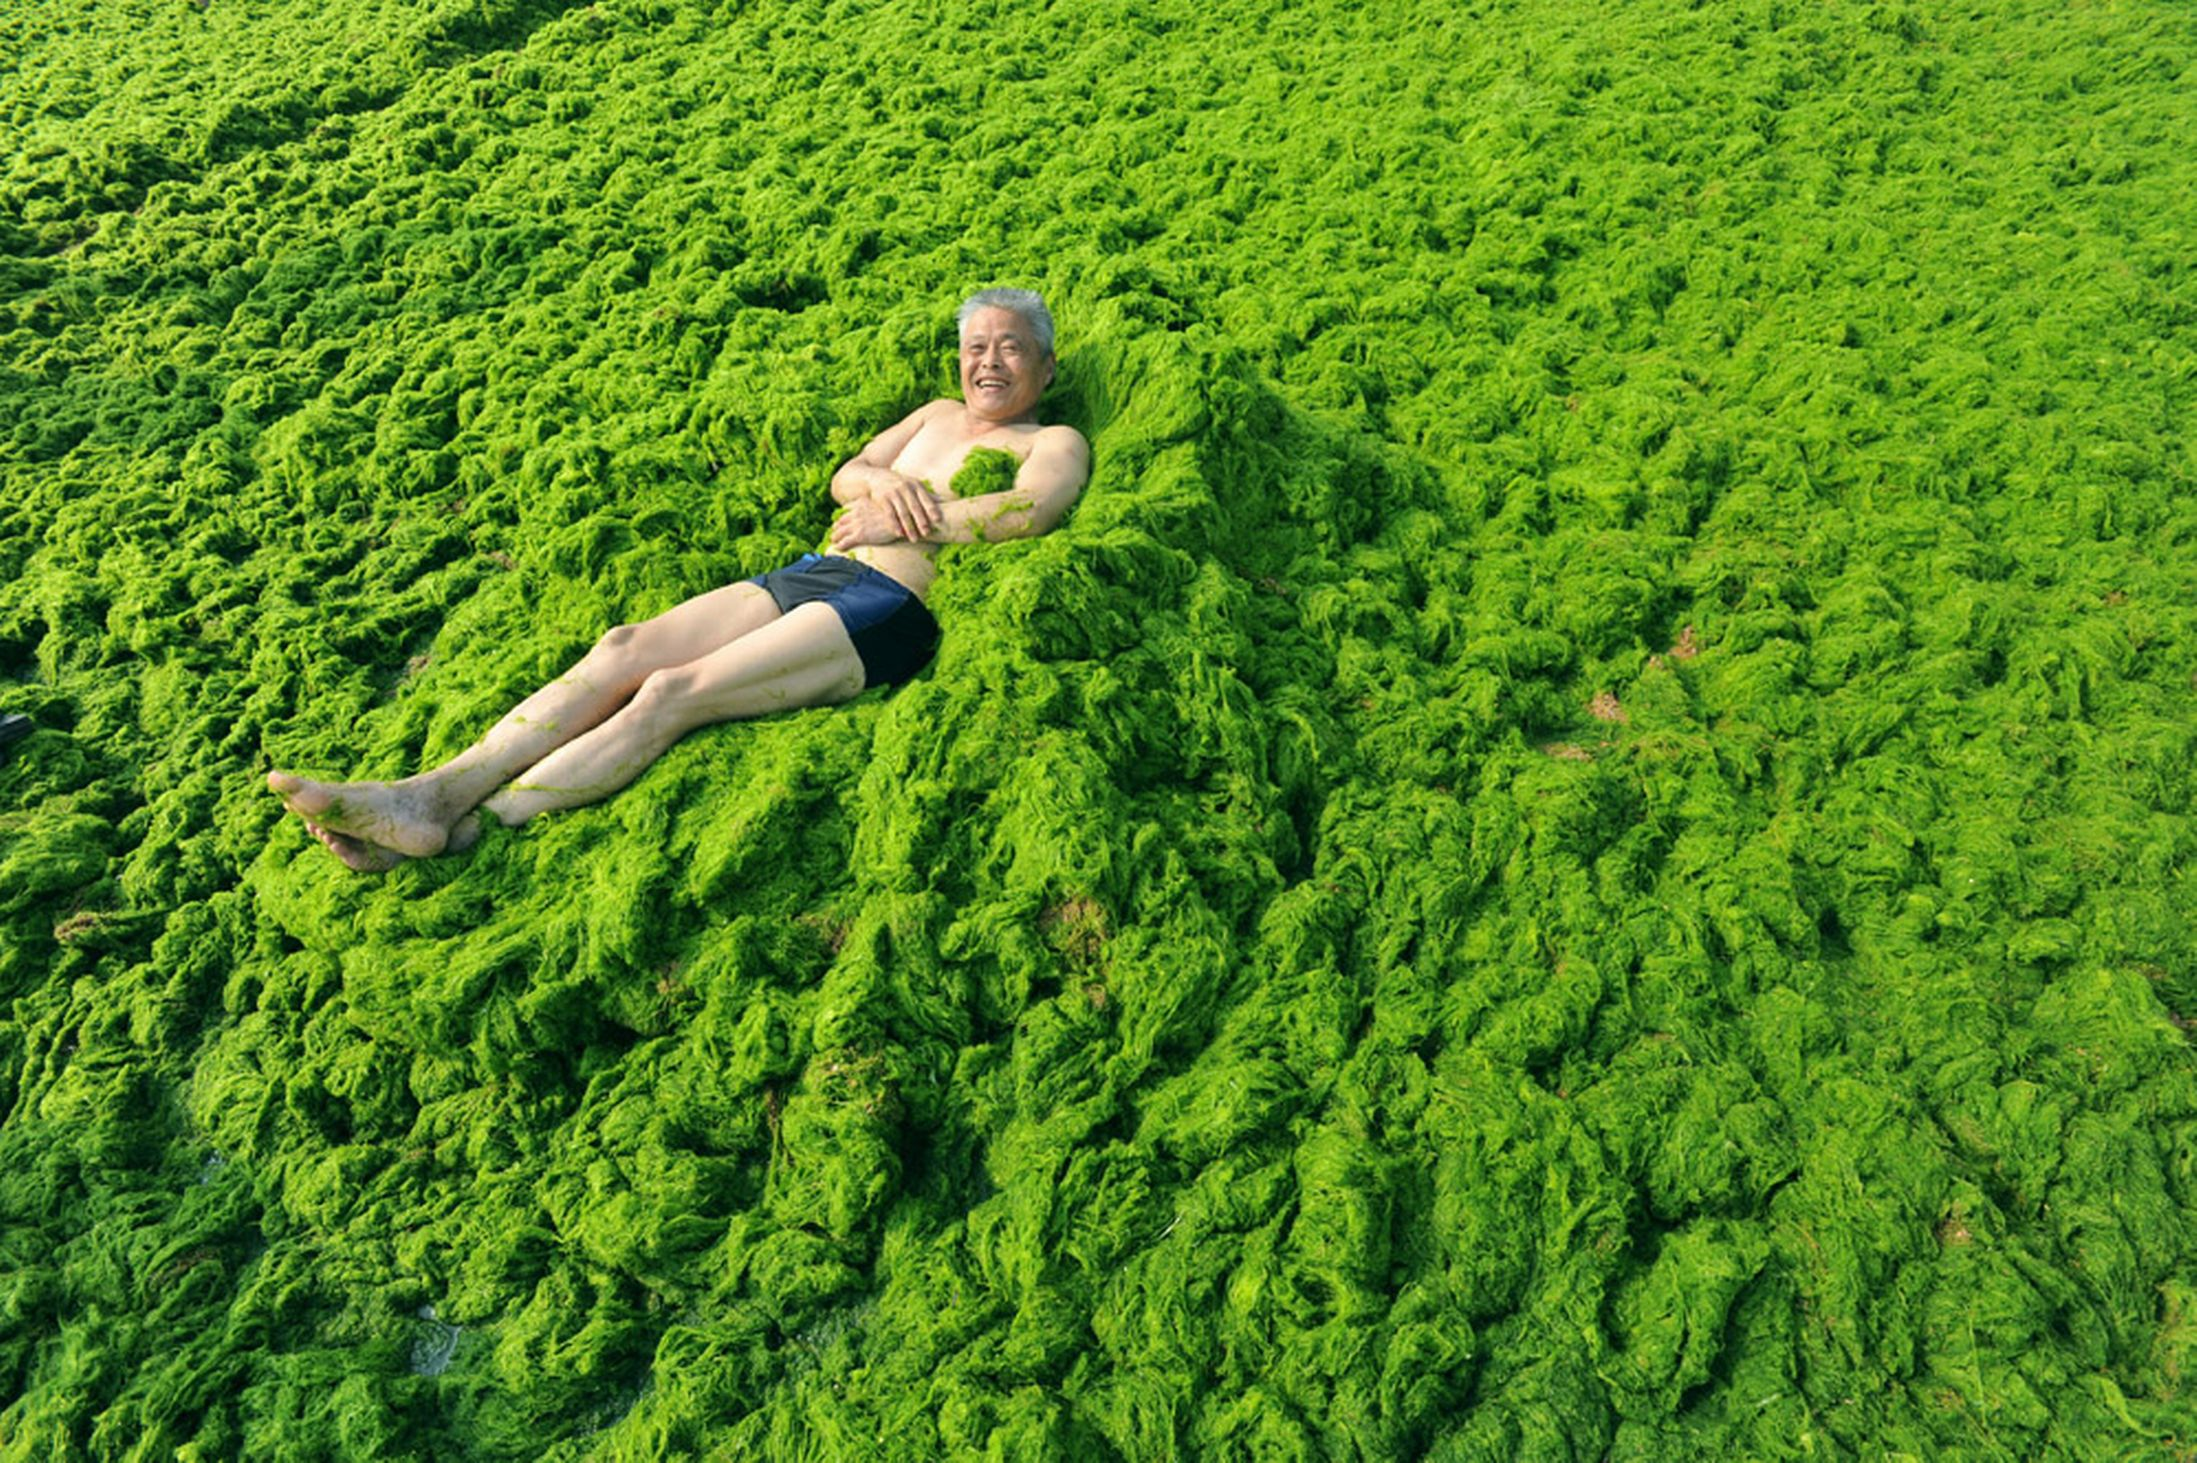 Qingdao - Algae Beach - China - Holiday - Old Man Chilling In Slime